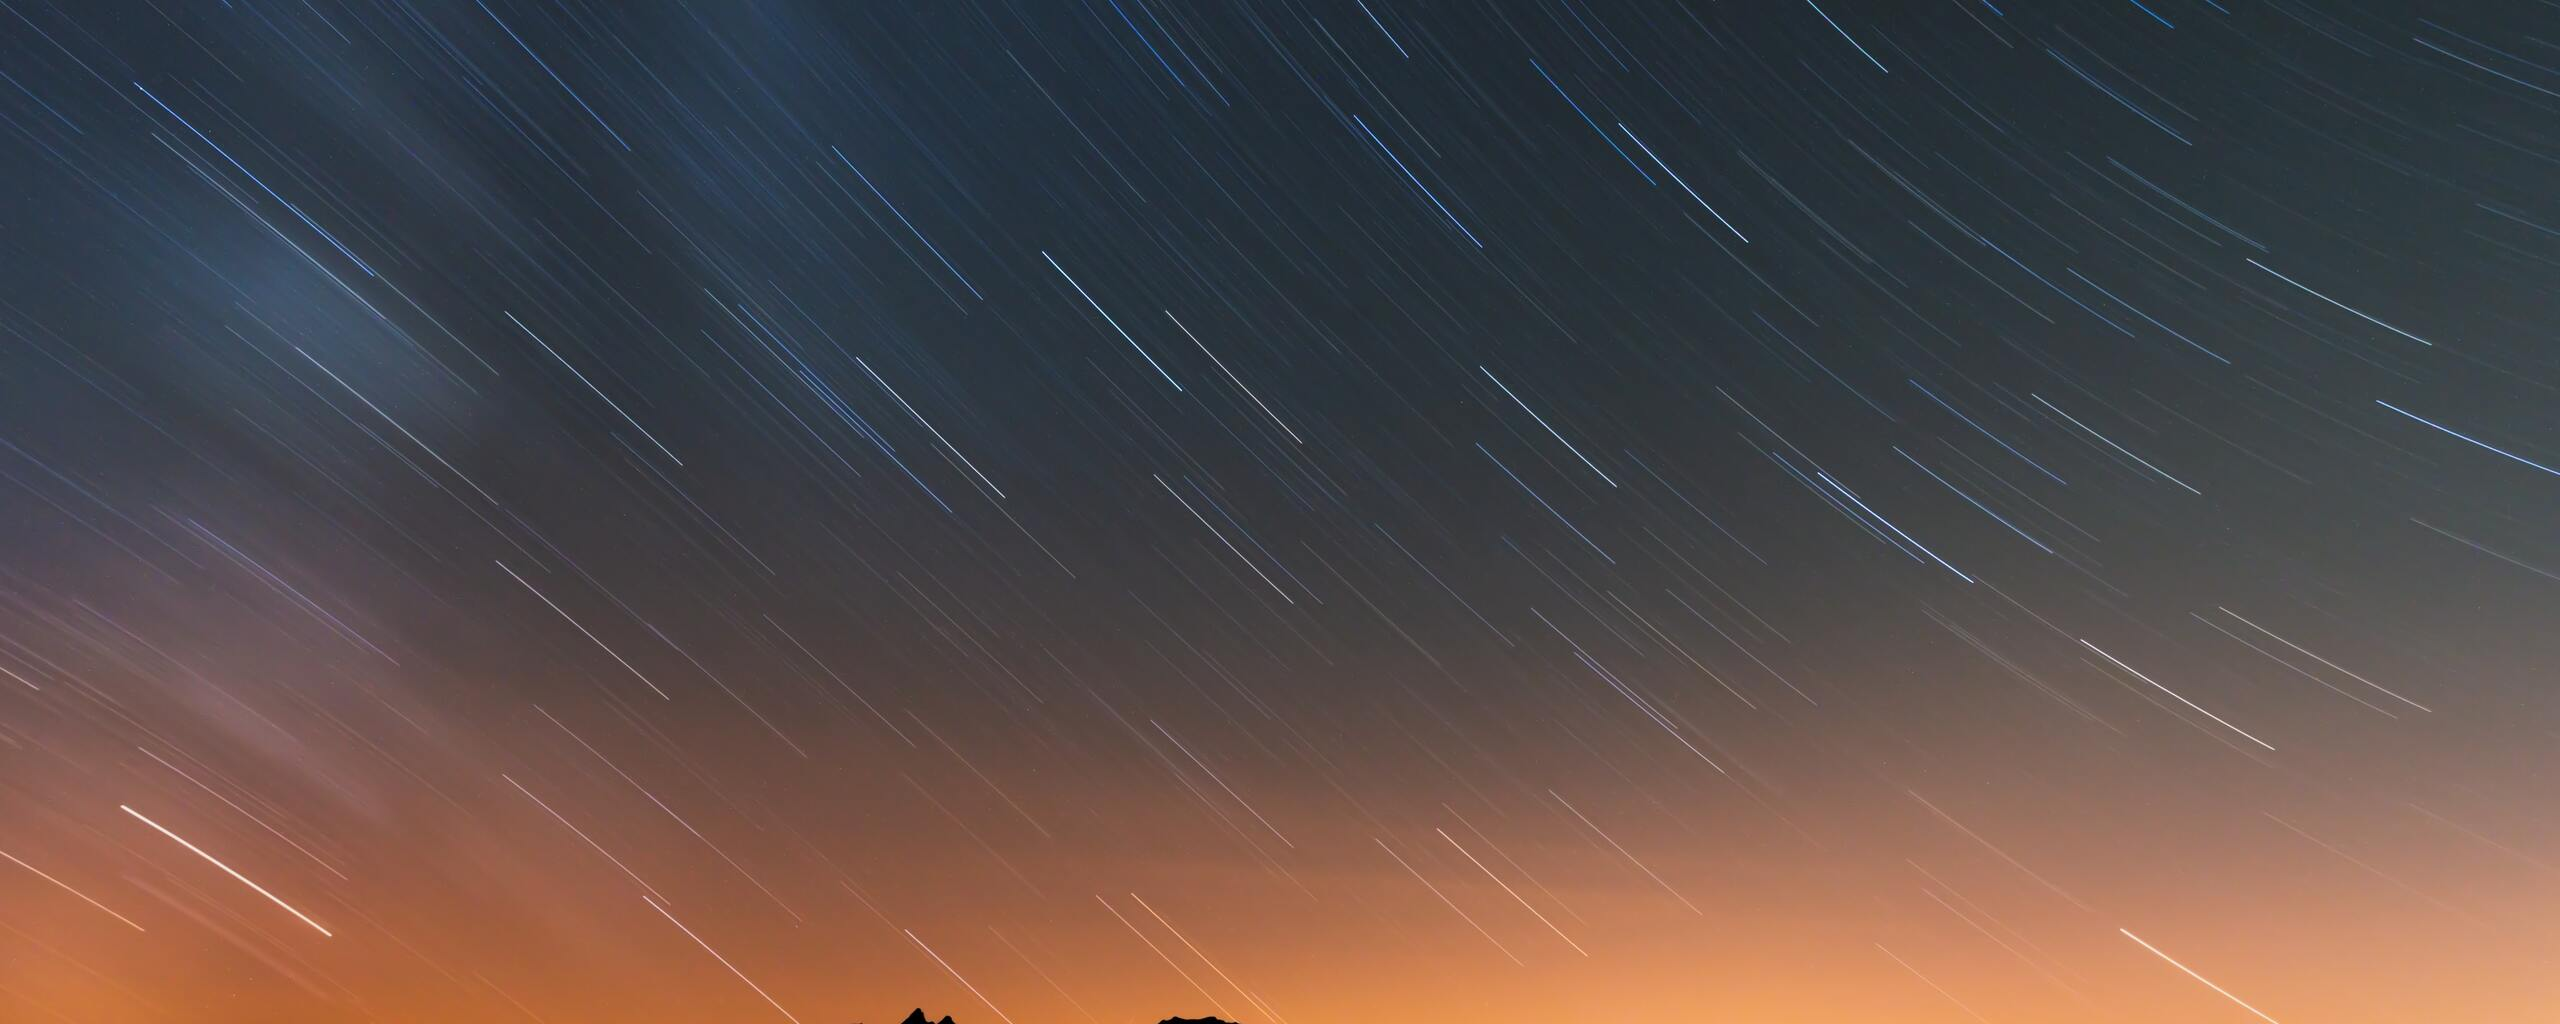 rain-of-stars-over-swiss-alps-5k-we.jpg